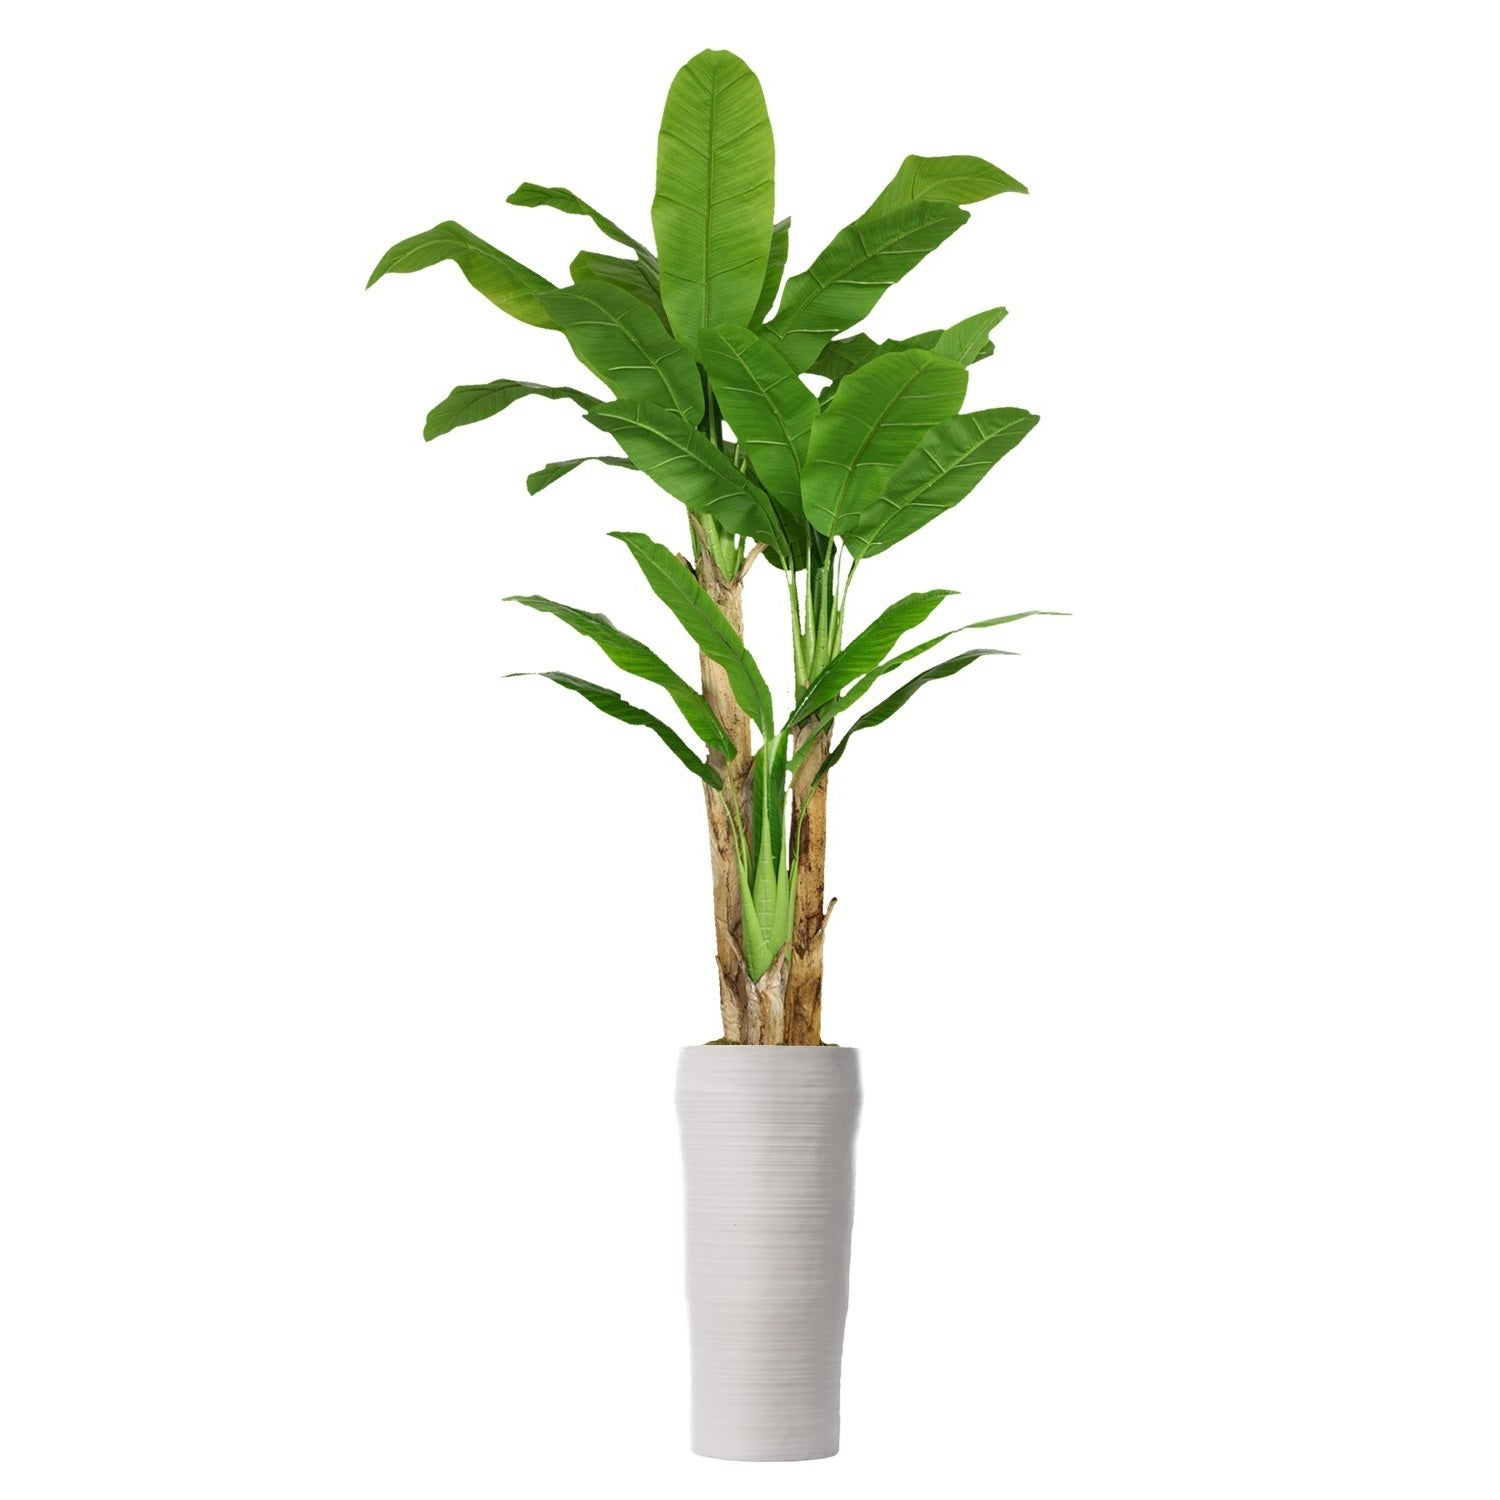 93 Inch Tall Banana Tree With Real Touch Leaves In Planter 93 Overstock 10642208